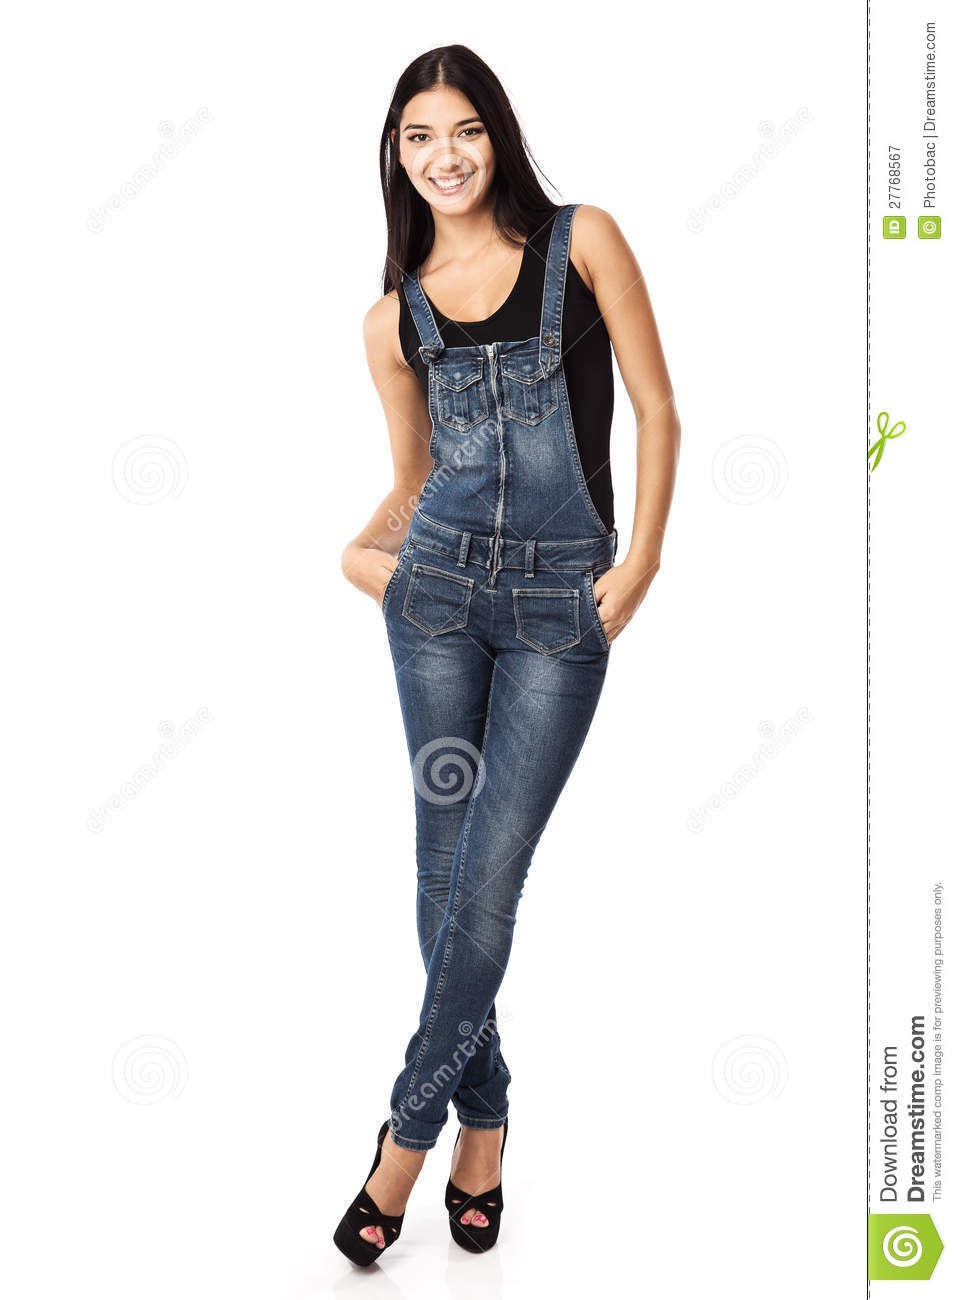 full-length-happy-young-woman-standing-hands-pockets-27768567.jpg